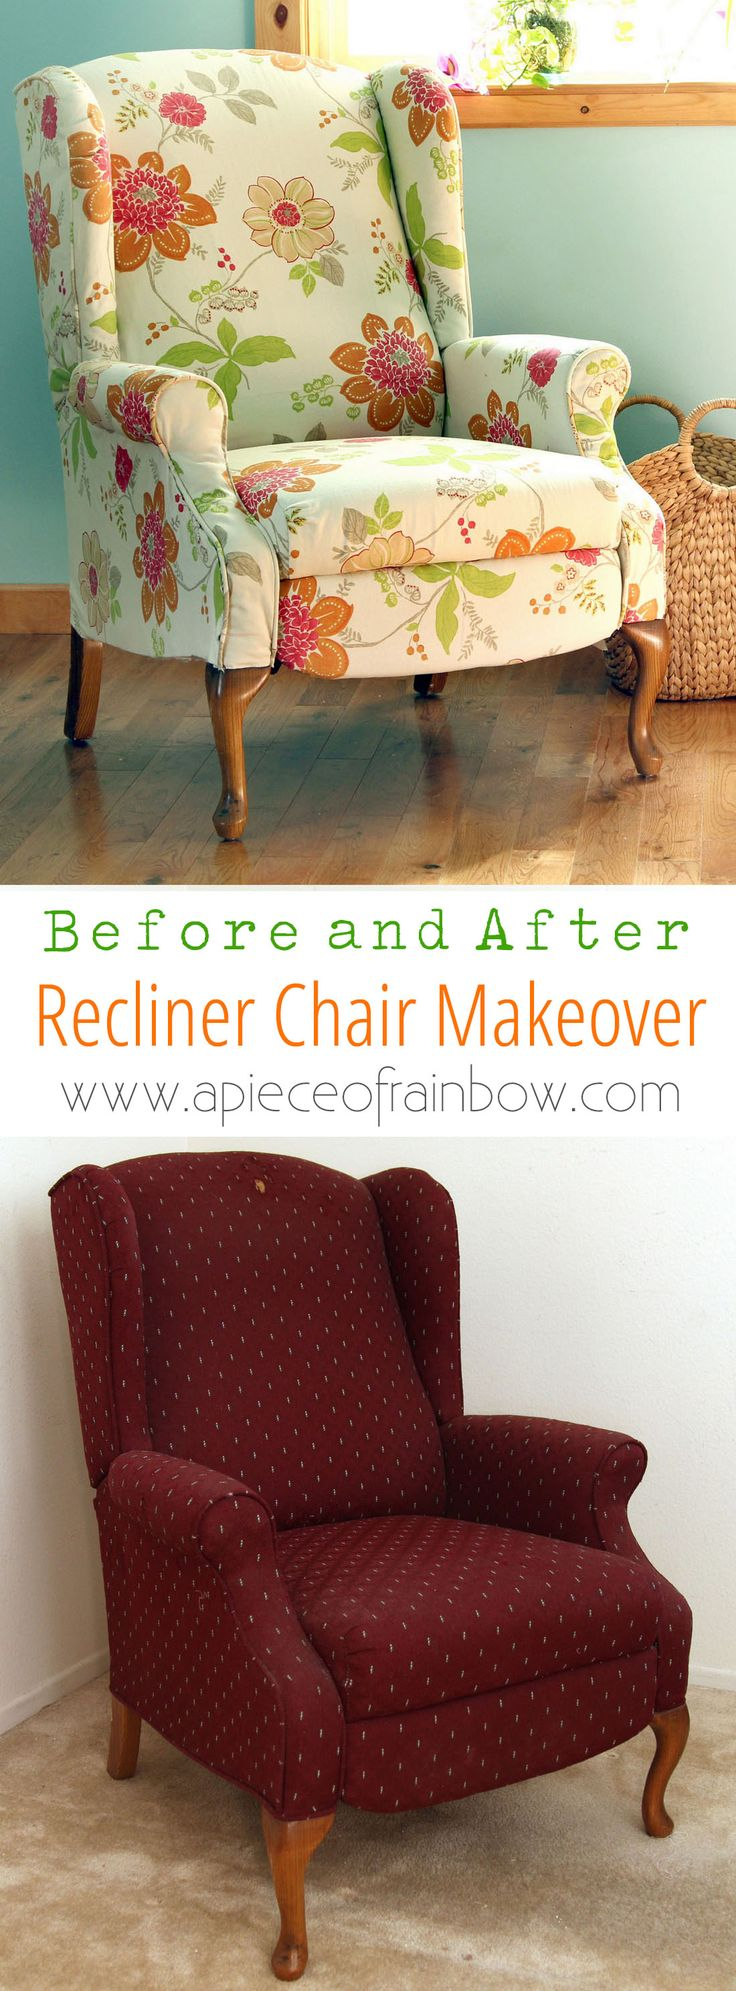 Dramatic before after transformation and detailed tutorial on how to makeover an upholstered recliner chair, and lots of helpful tips for beginners. A Piece Of Rainbow http://www.apieceofrainbow.com/fabric-chair-makeover-before-after/2/